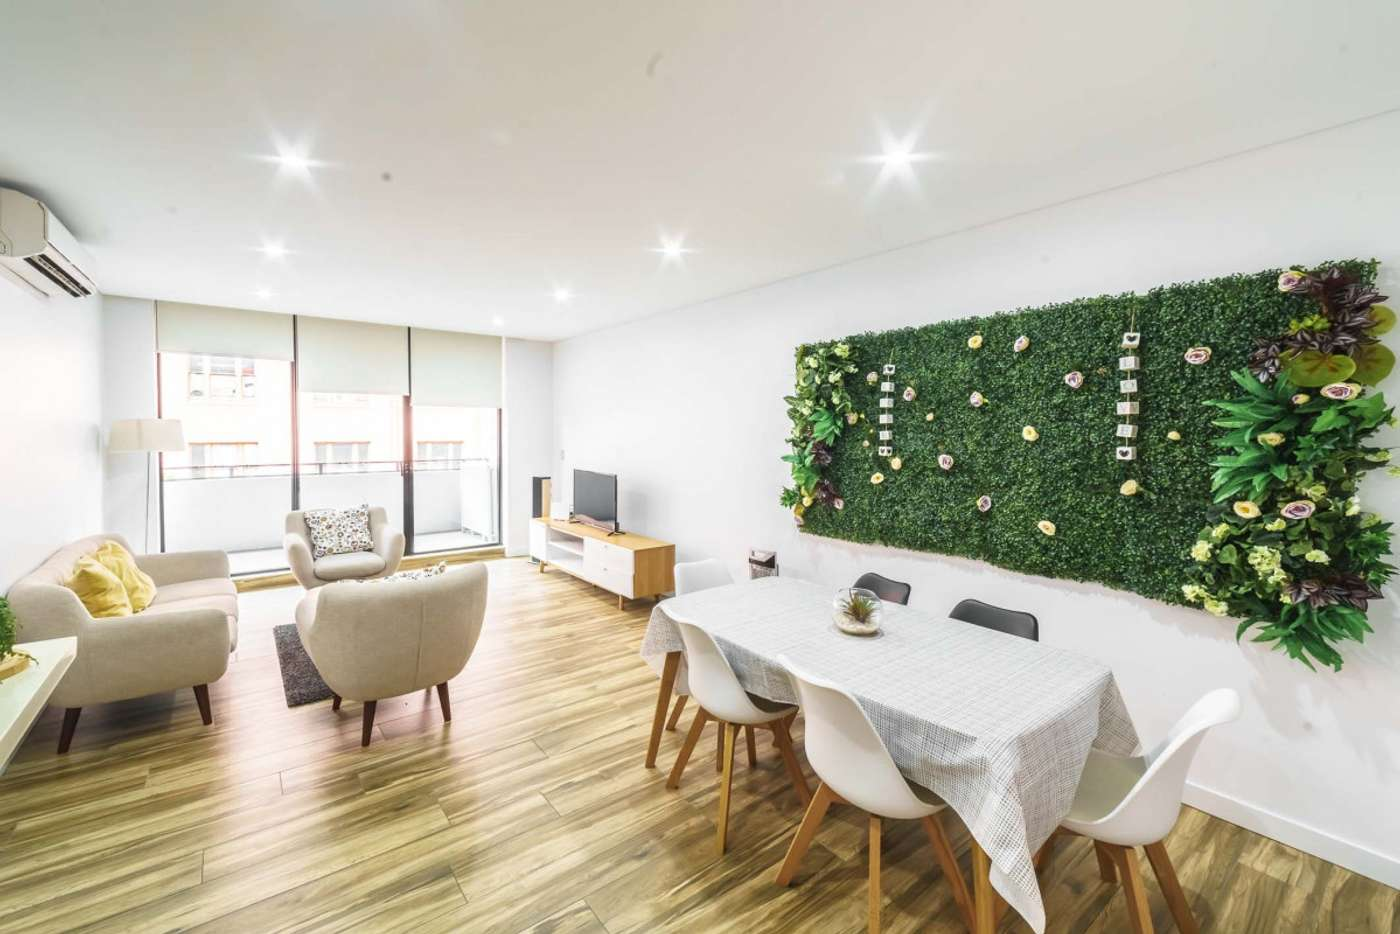 Main view of Homely apartment listing, 252/71 Jones Street, Ultimo NSW 2007